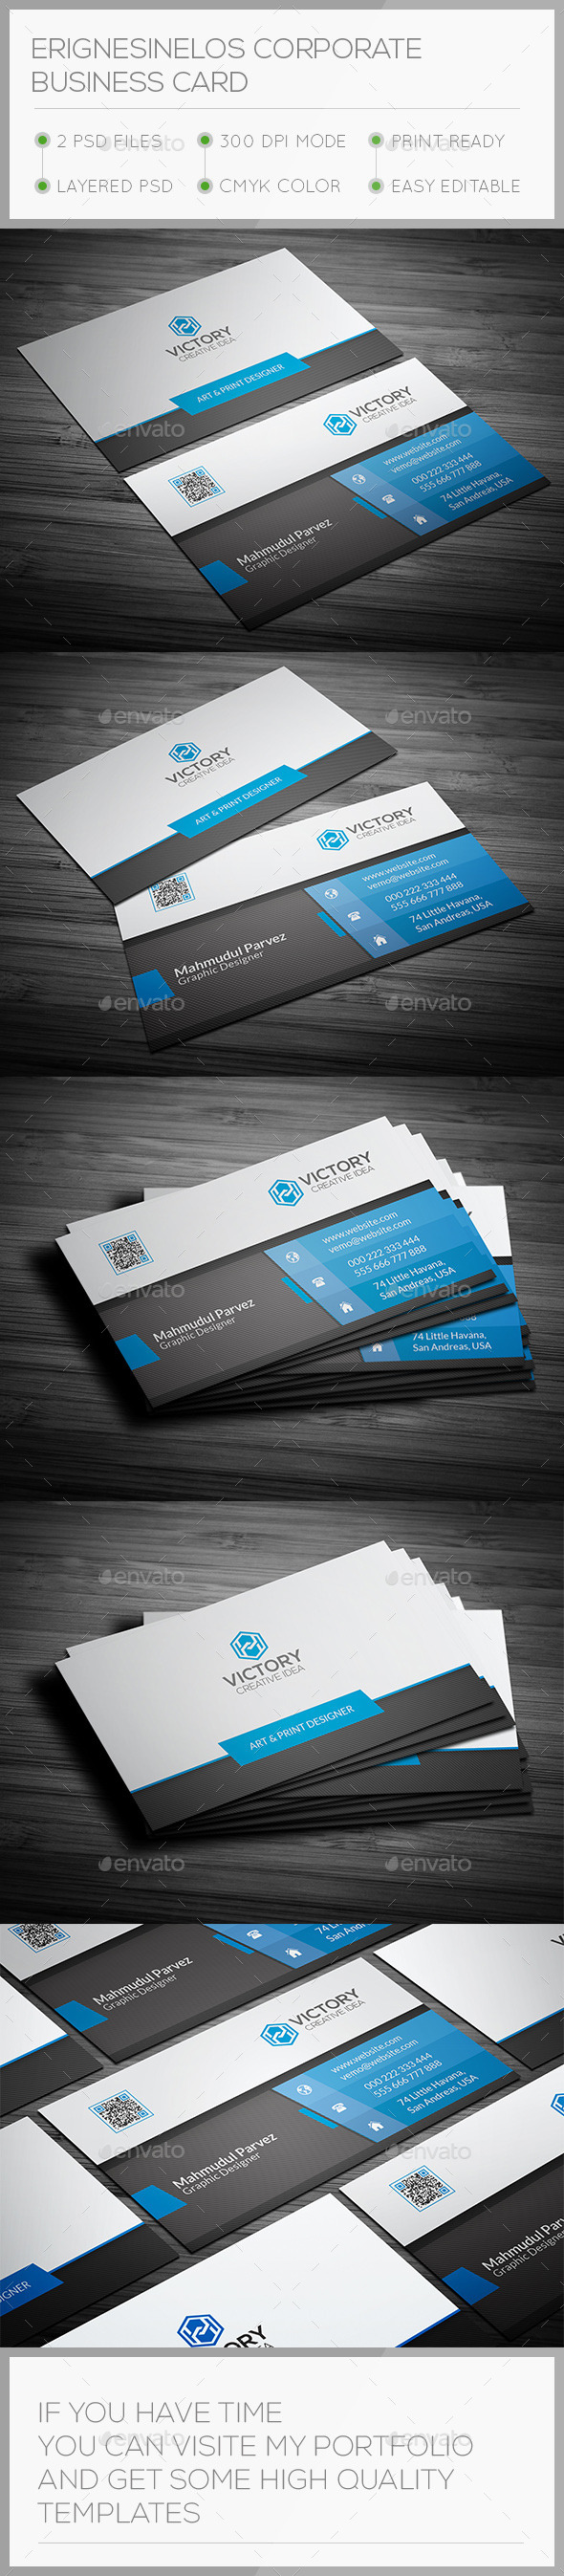 GraphicRiver Erignesinelos Corporate Business Card 11268470